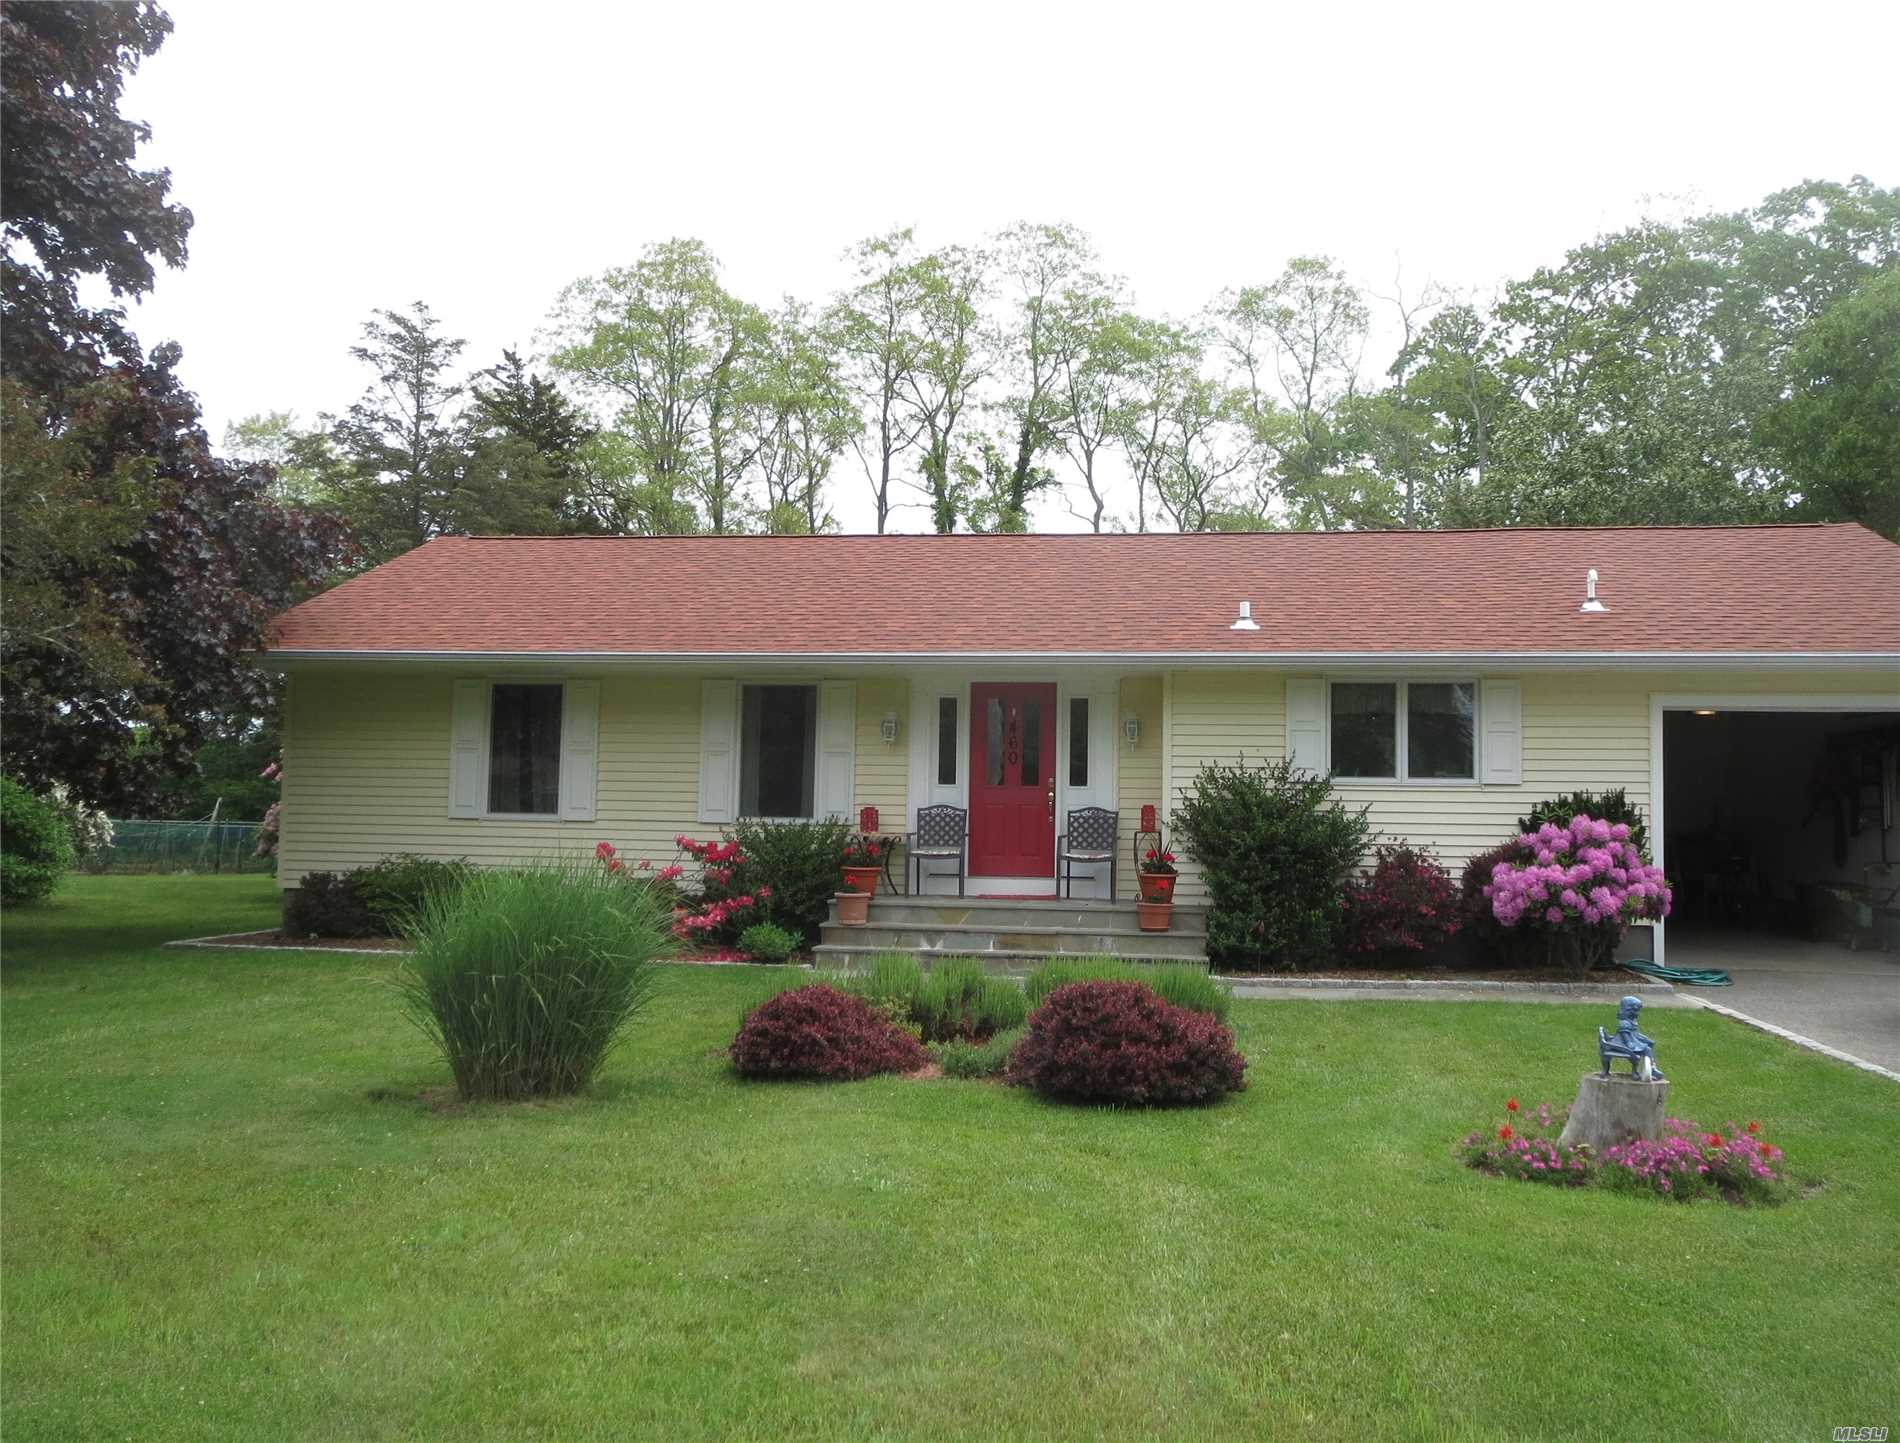 460 Kayleighs Ct - East Marion, New York